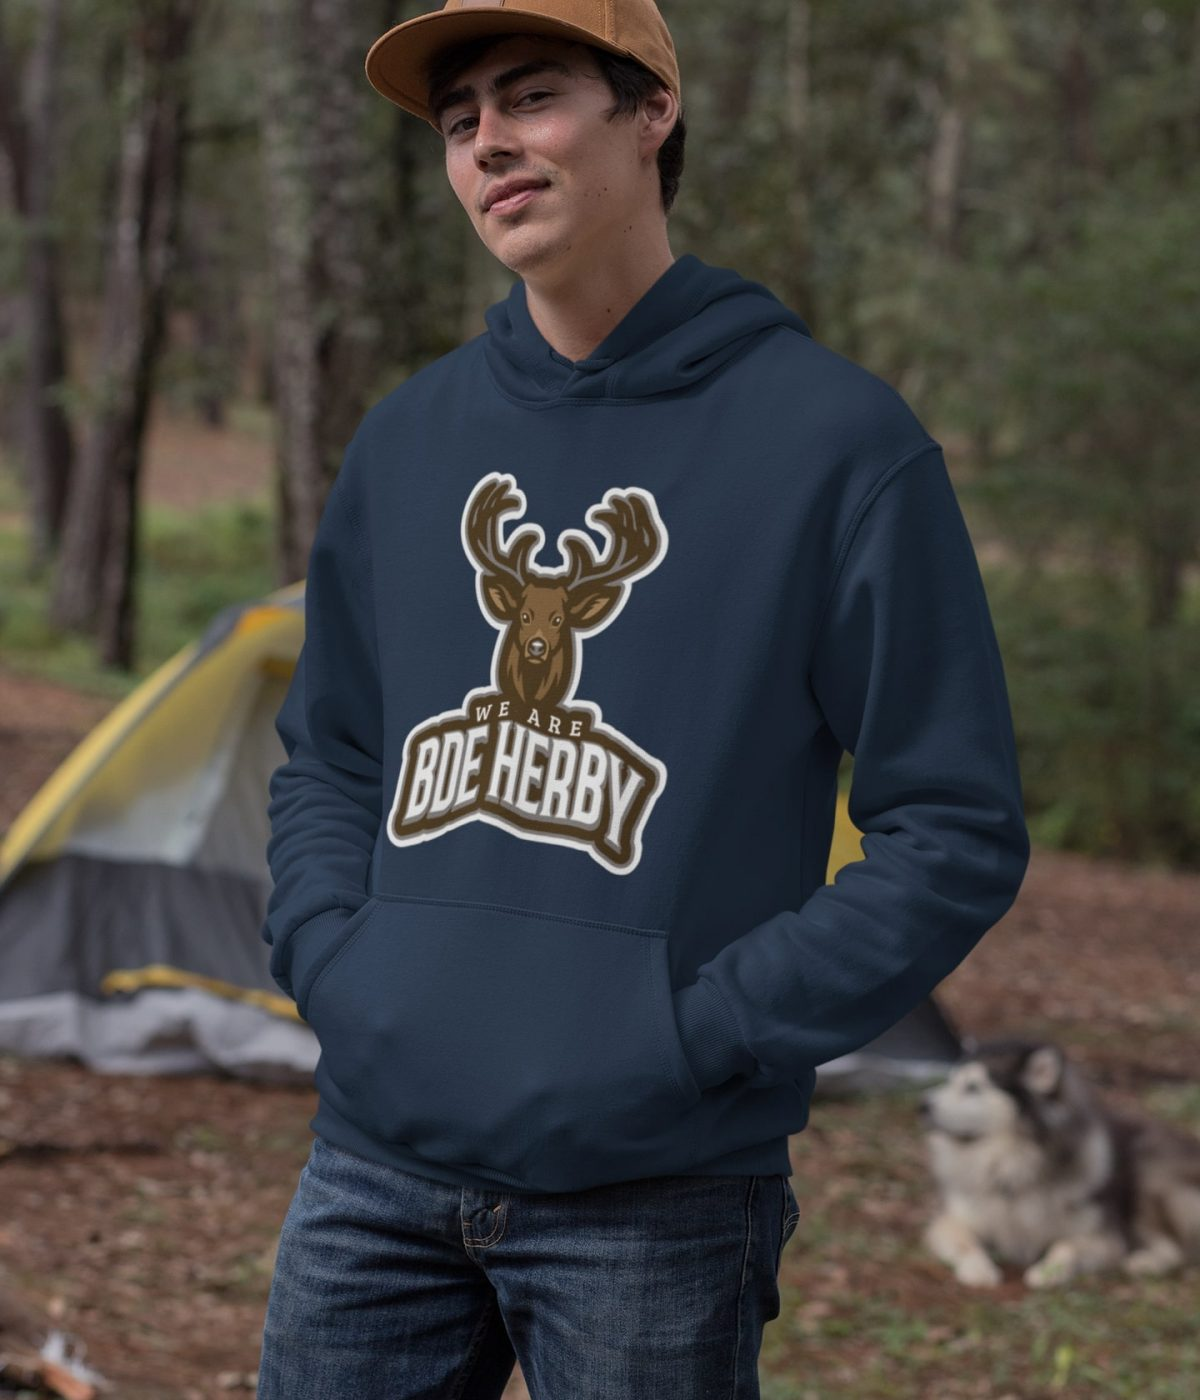 mockup-of-a-man-wearing-a-pullover-hoodie-in-the-woods-30482